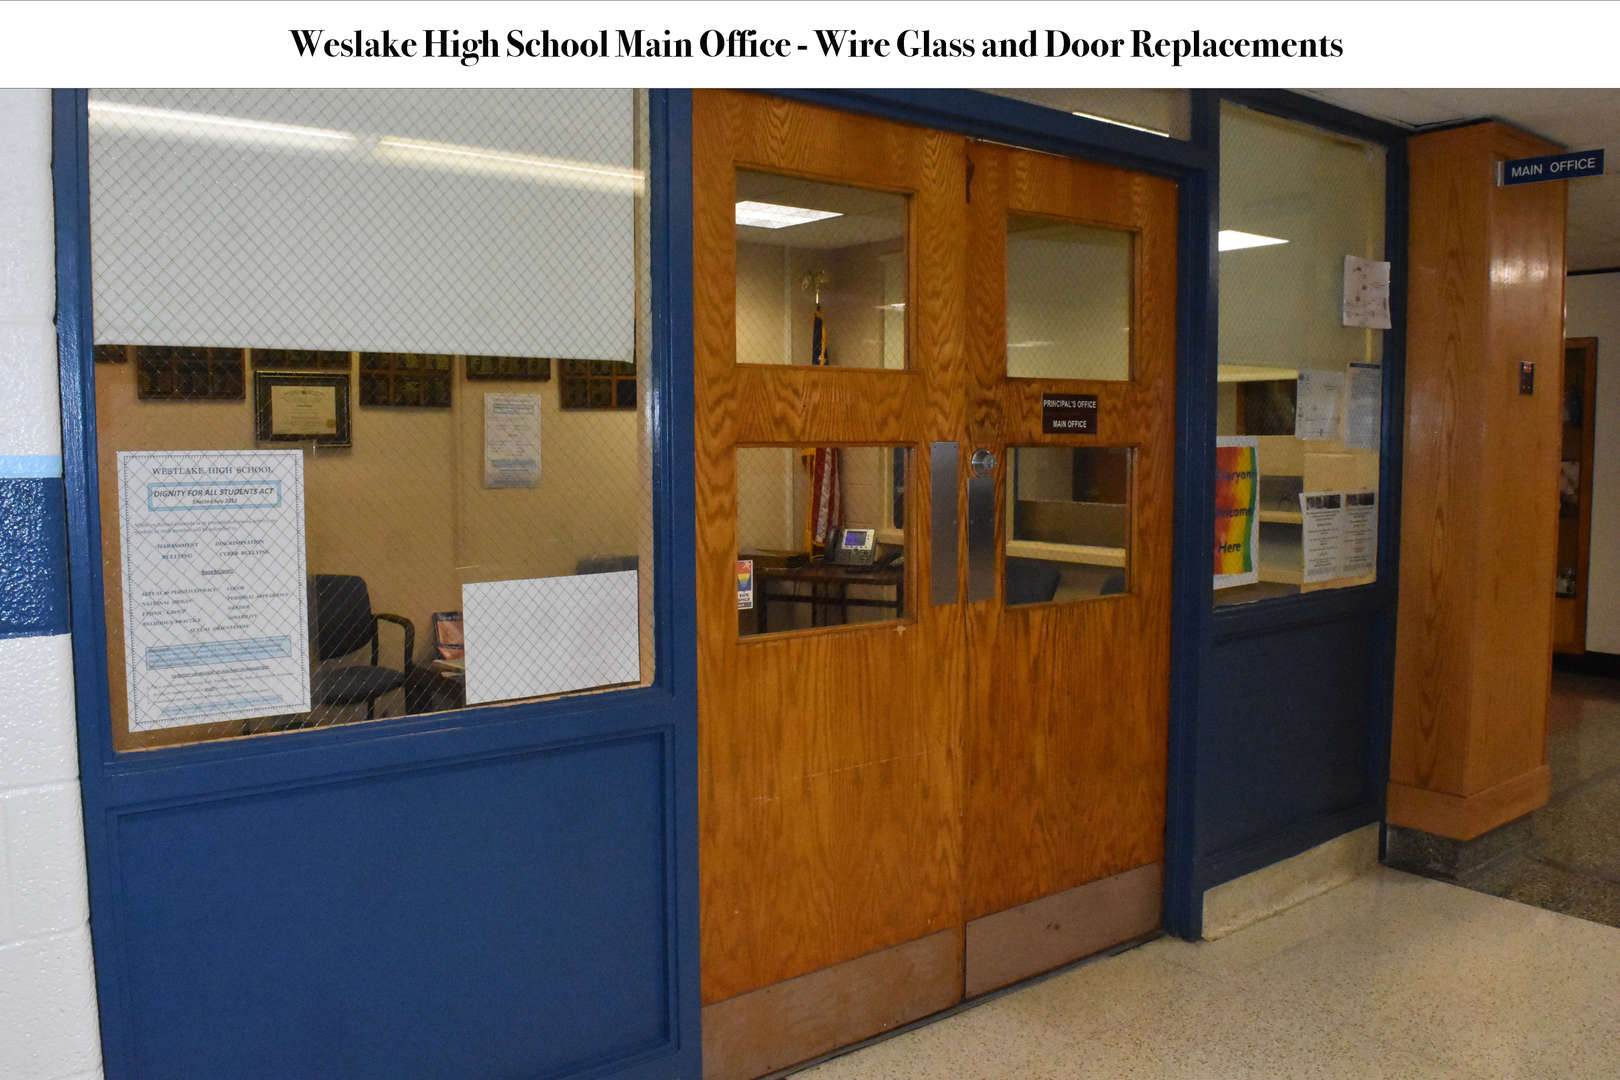 Double doors leading into WHS Main Office